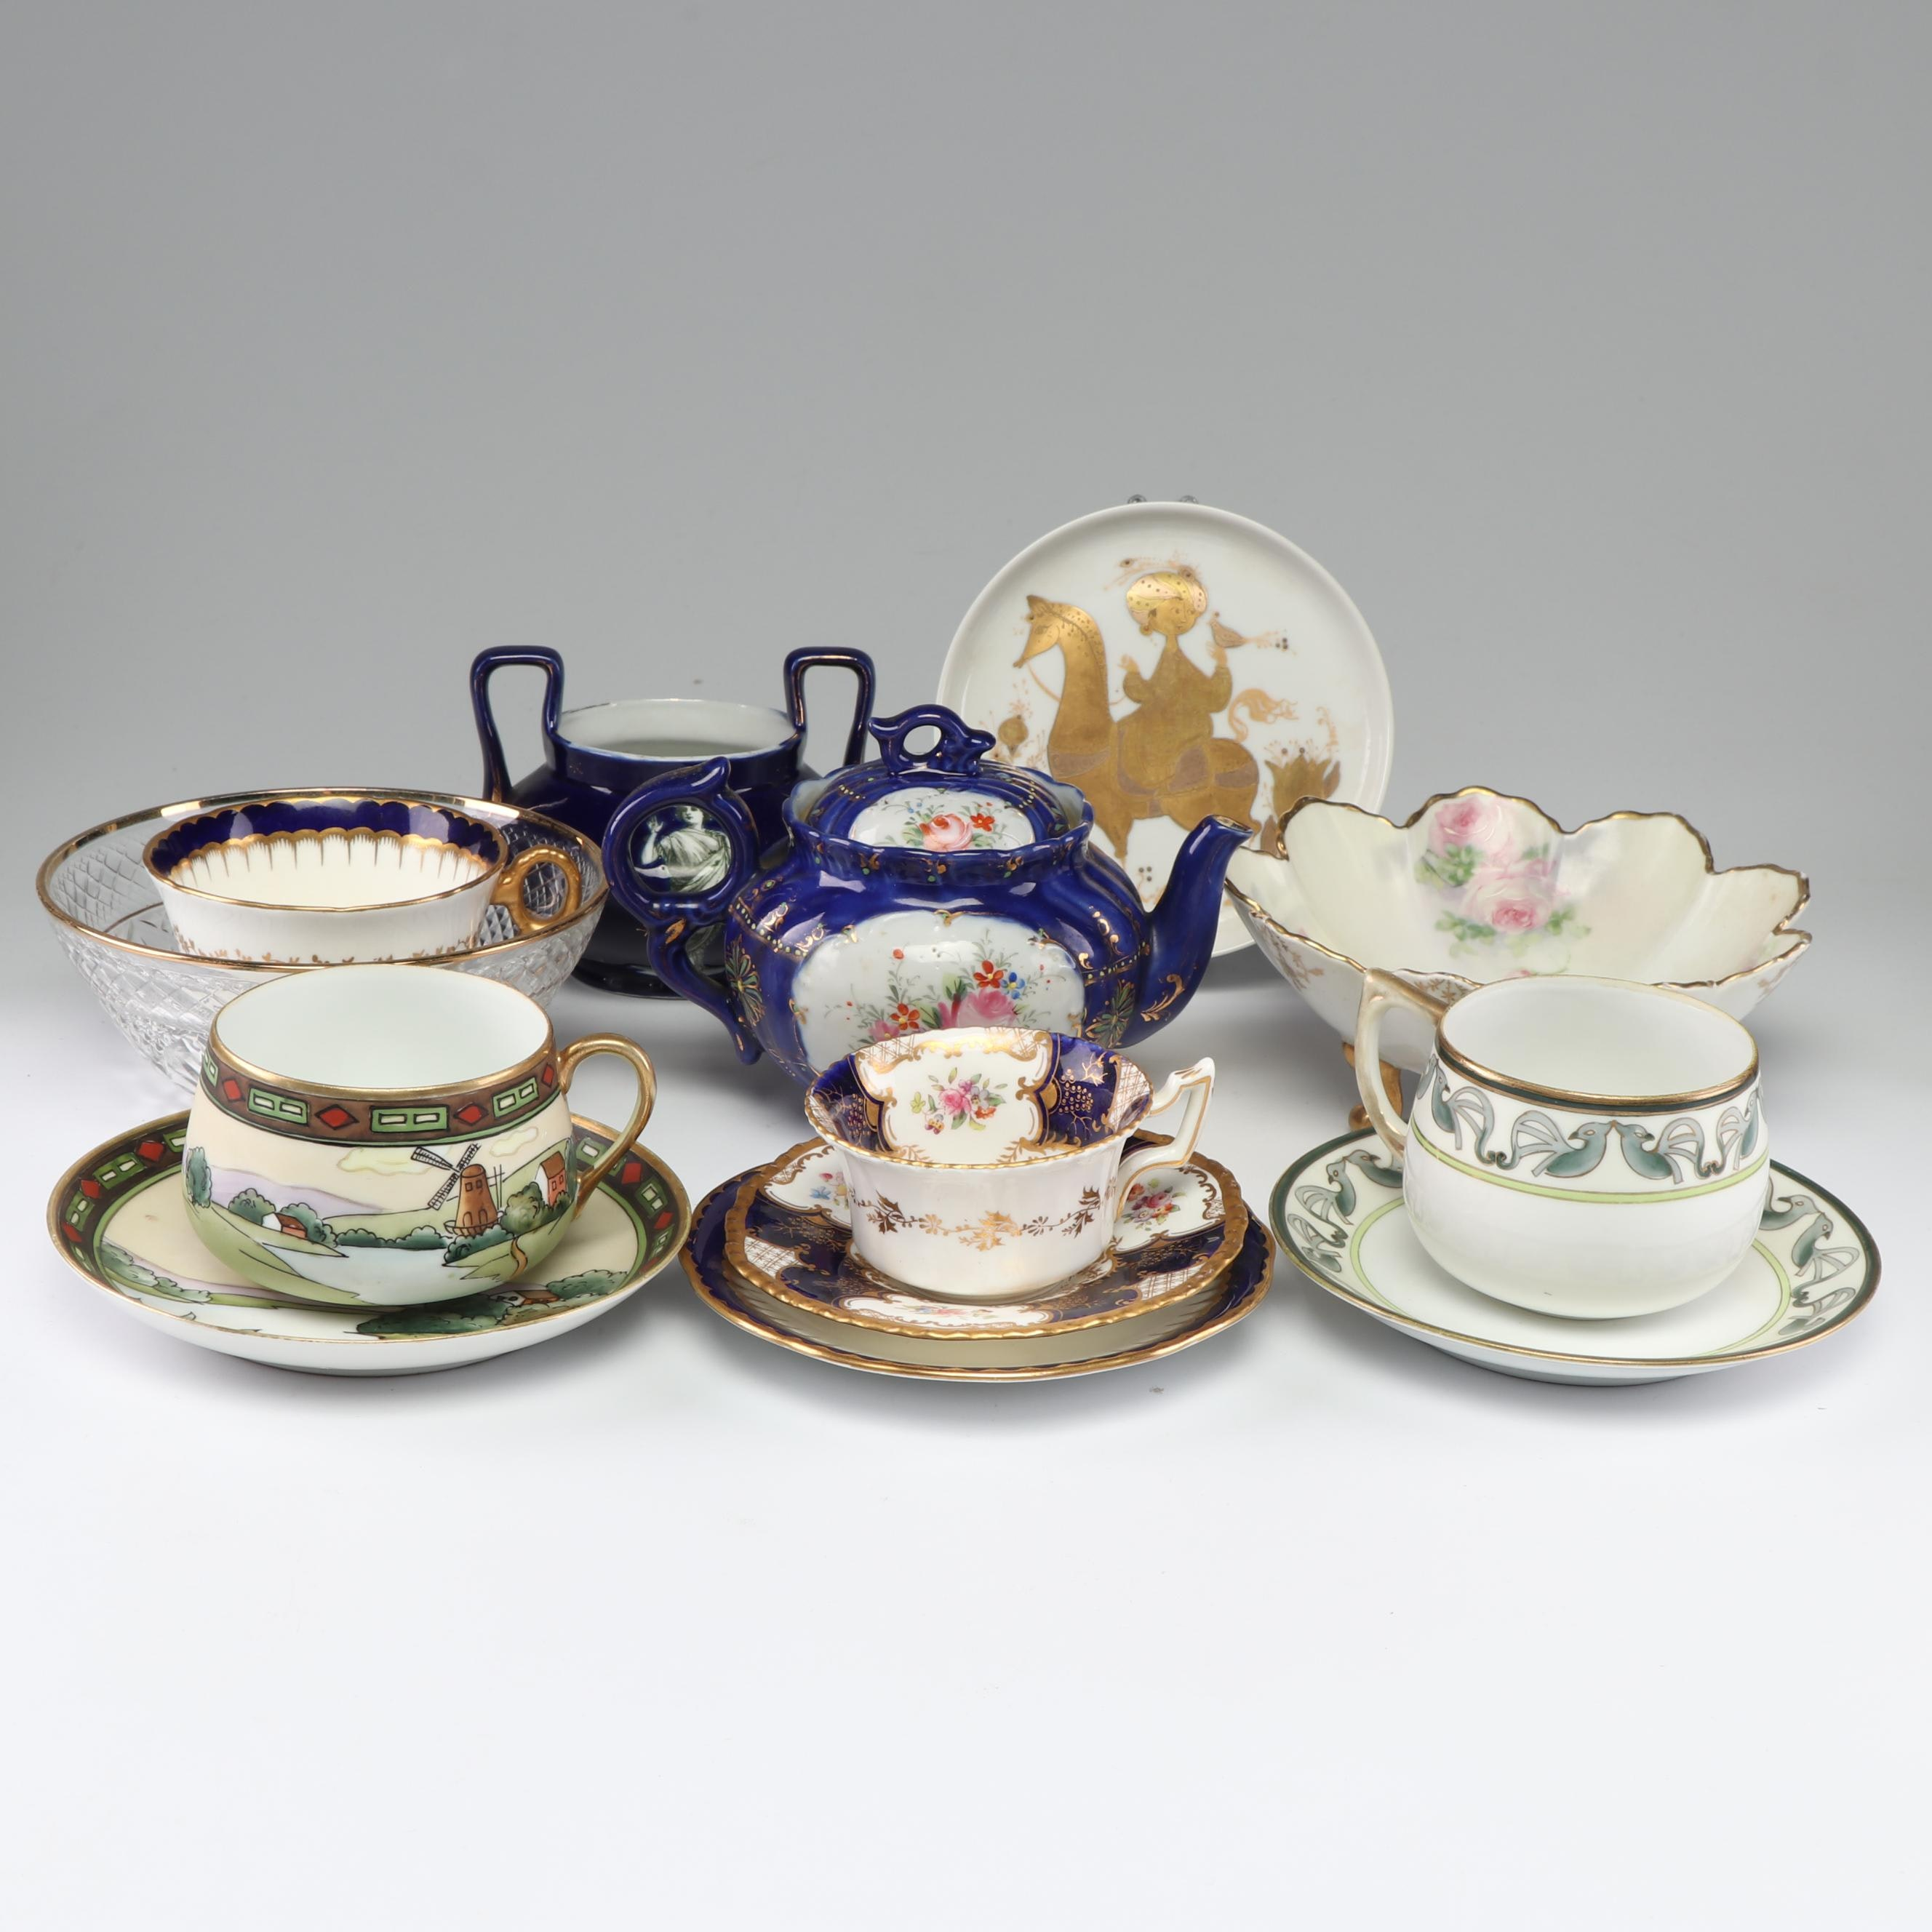 Porcelain Tea Serveware Including Nippon and Coalport, Early to Mid 20th Century